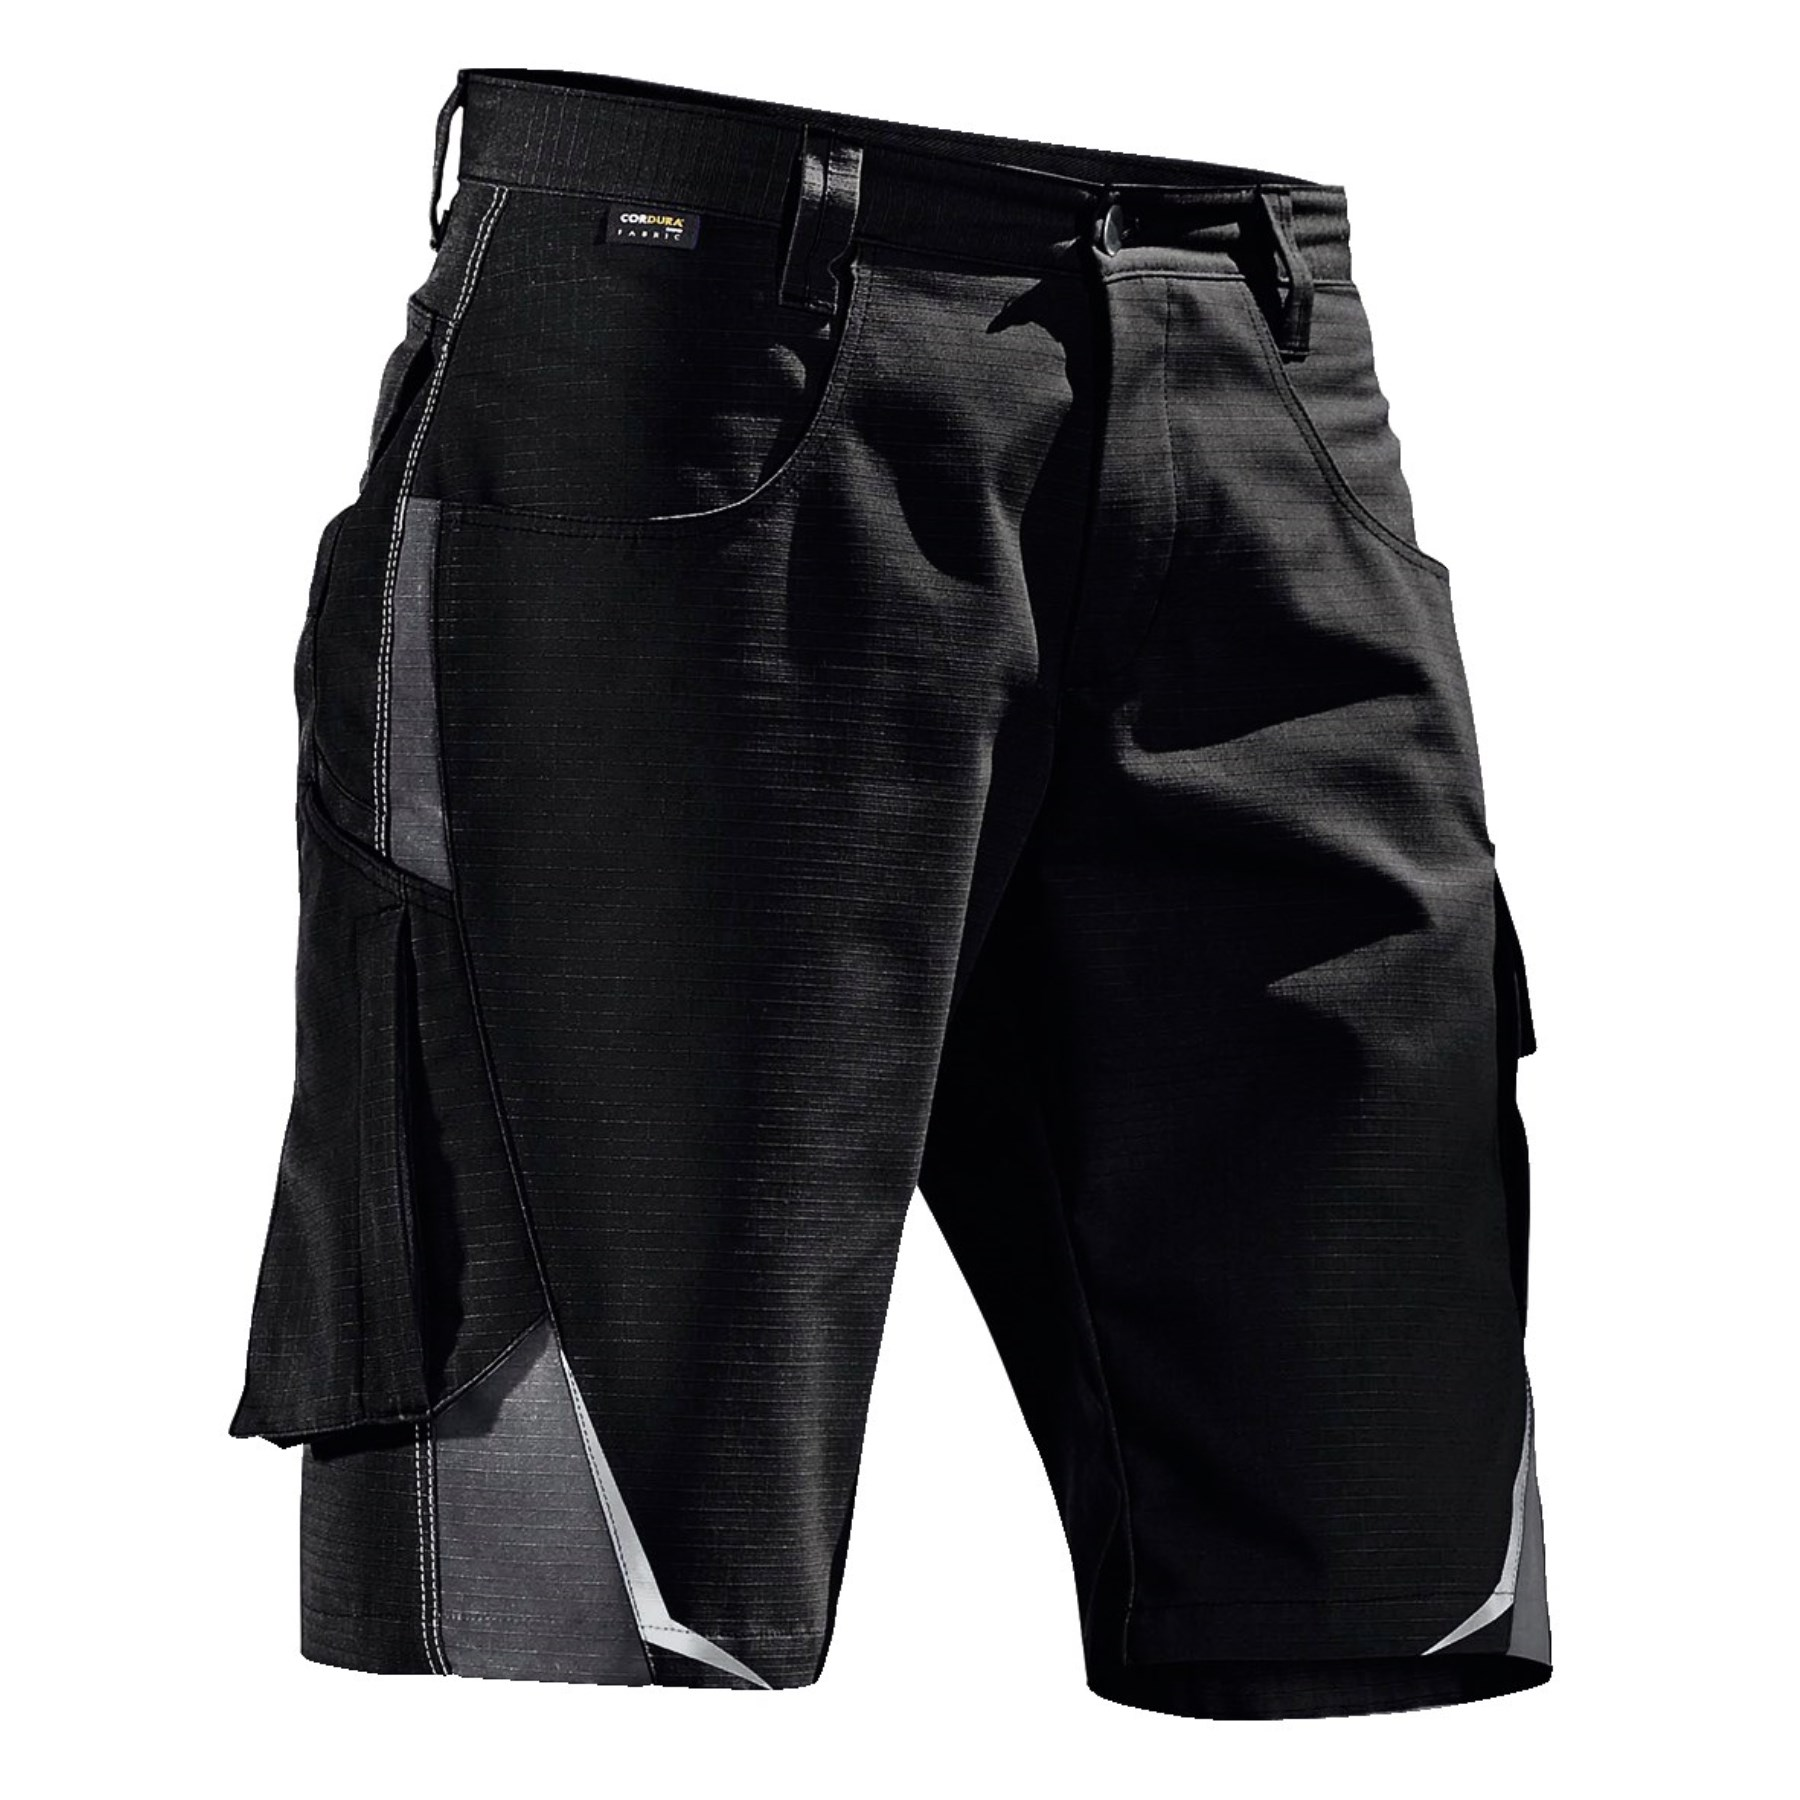 1239232 - Shorts Pulsschlag